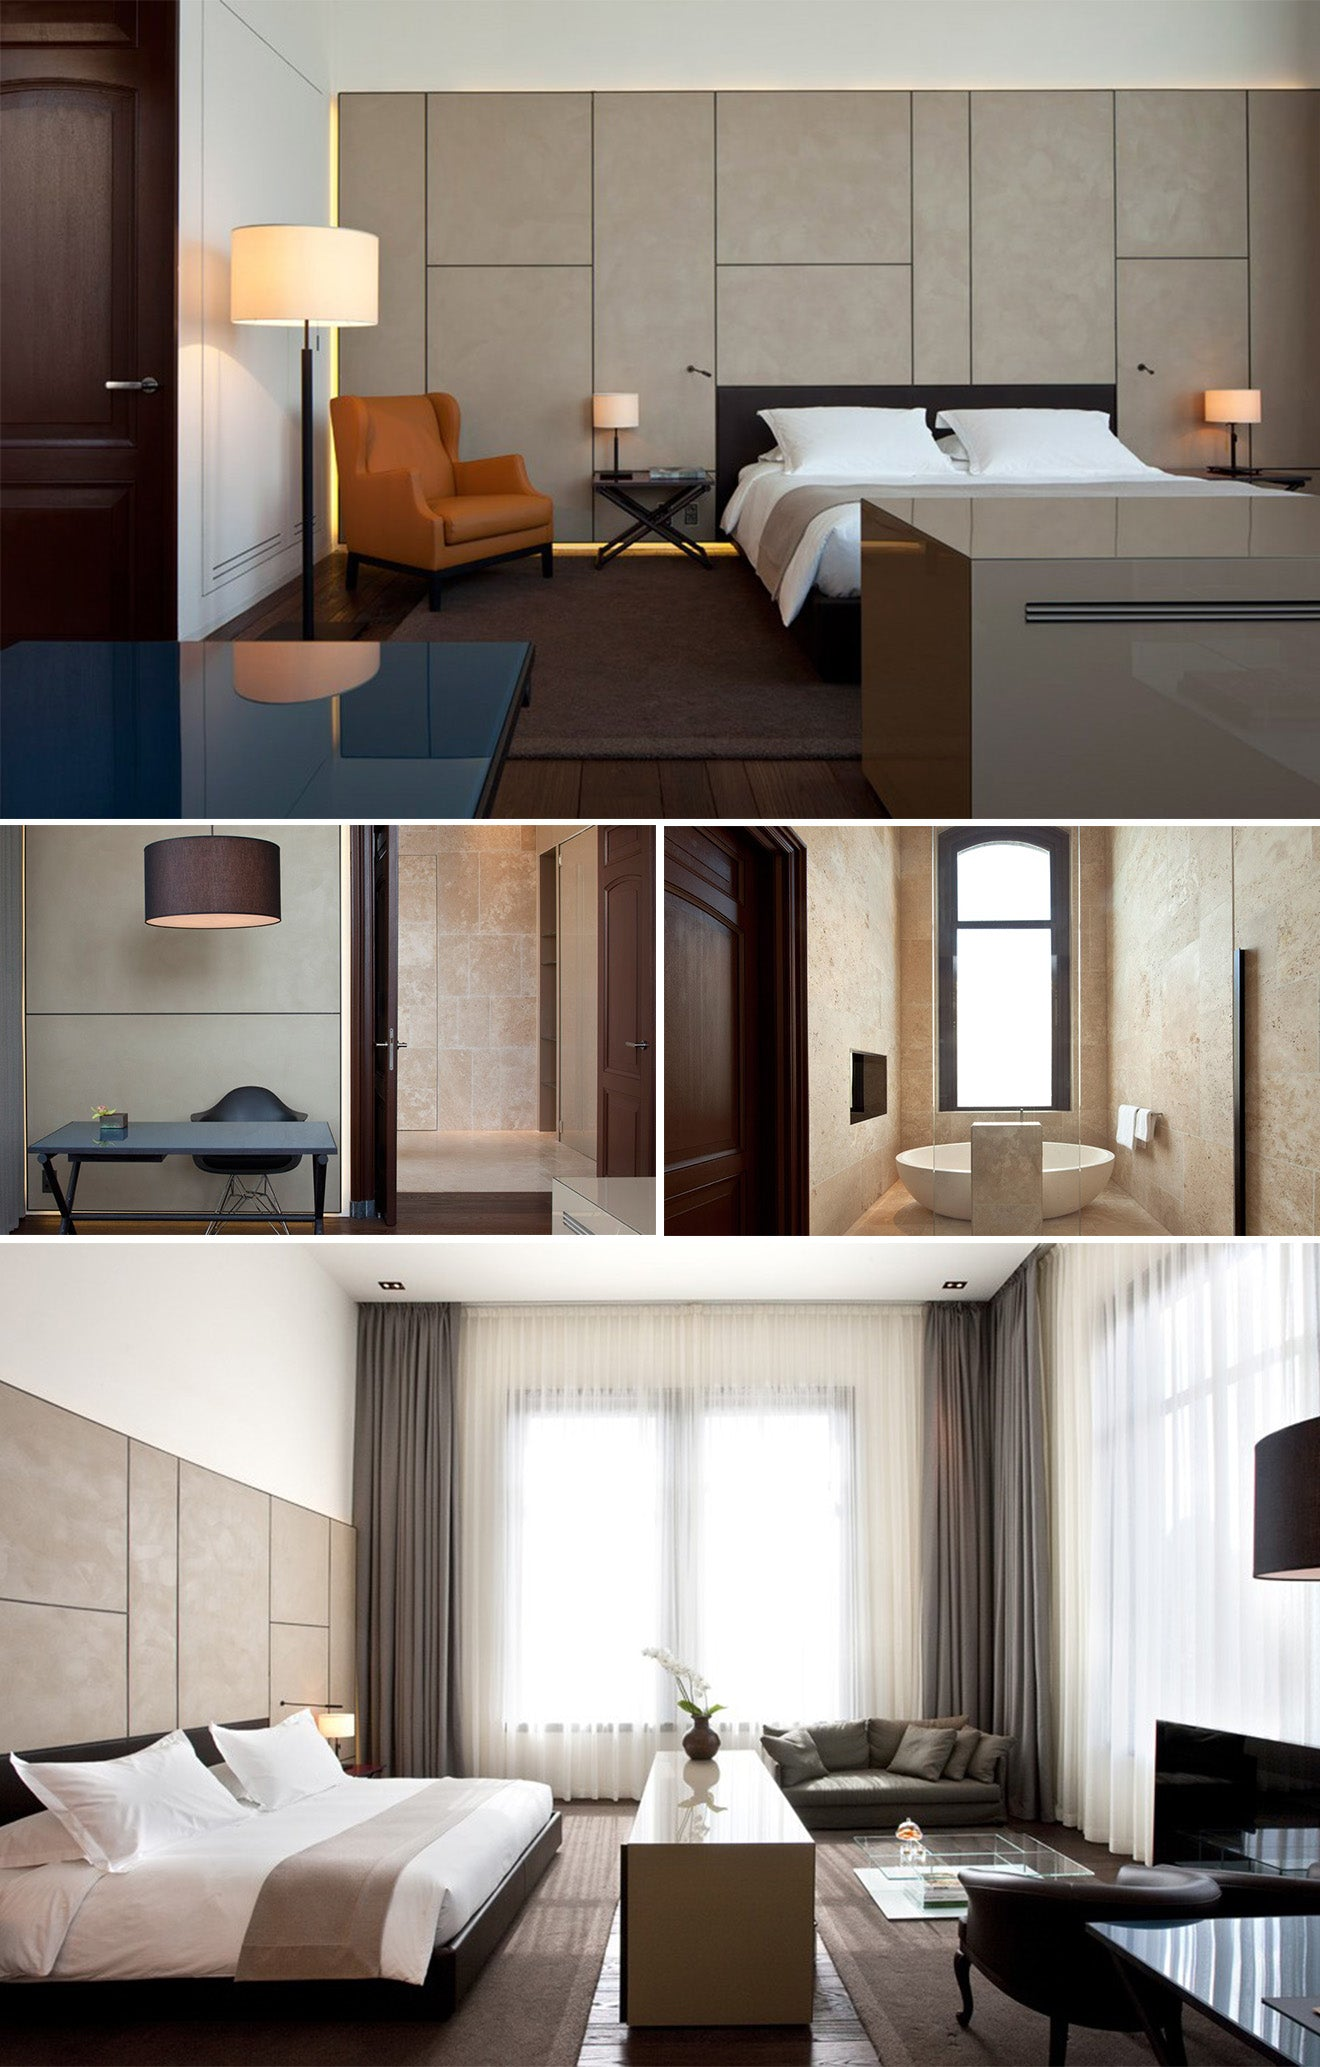 Luxurious Van Baerle Suite at the Conservatorium in Amsterdam